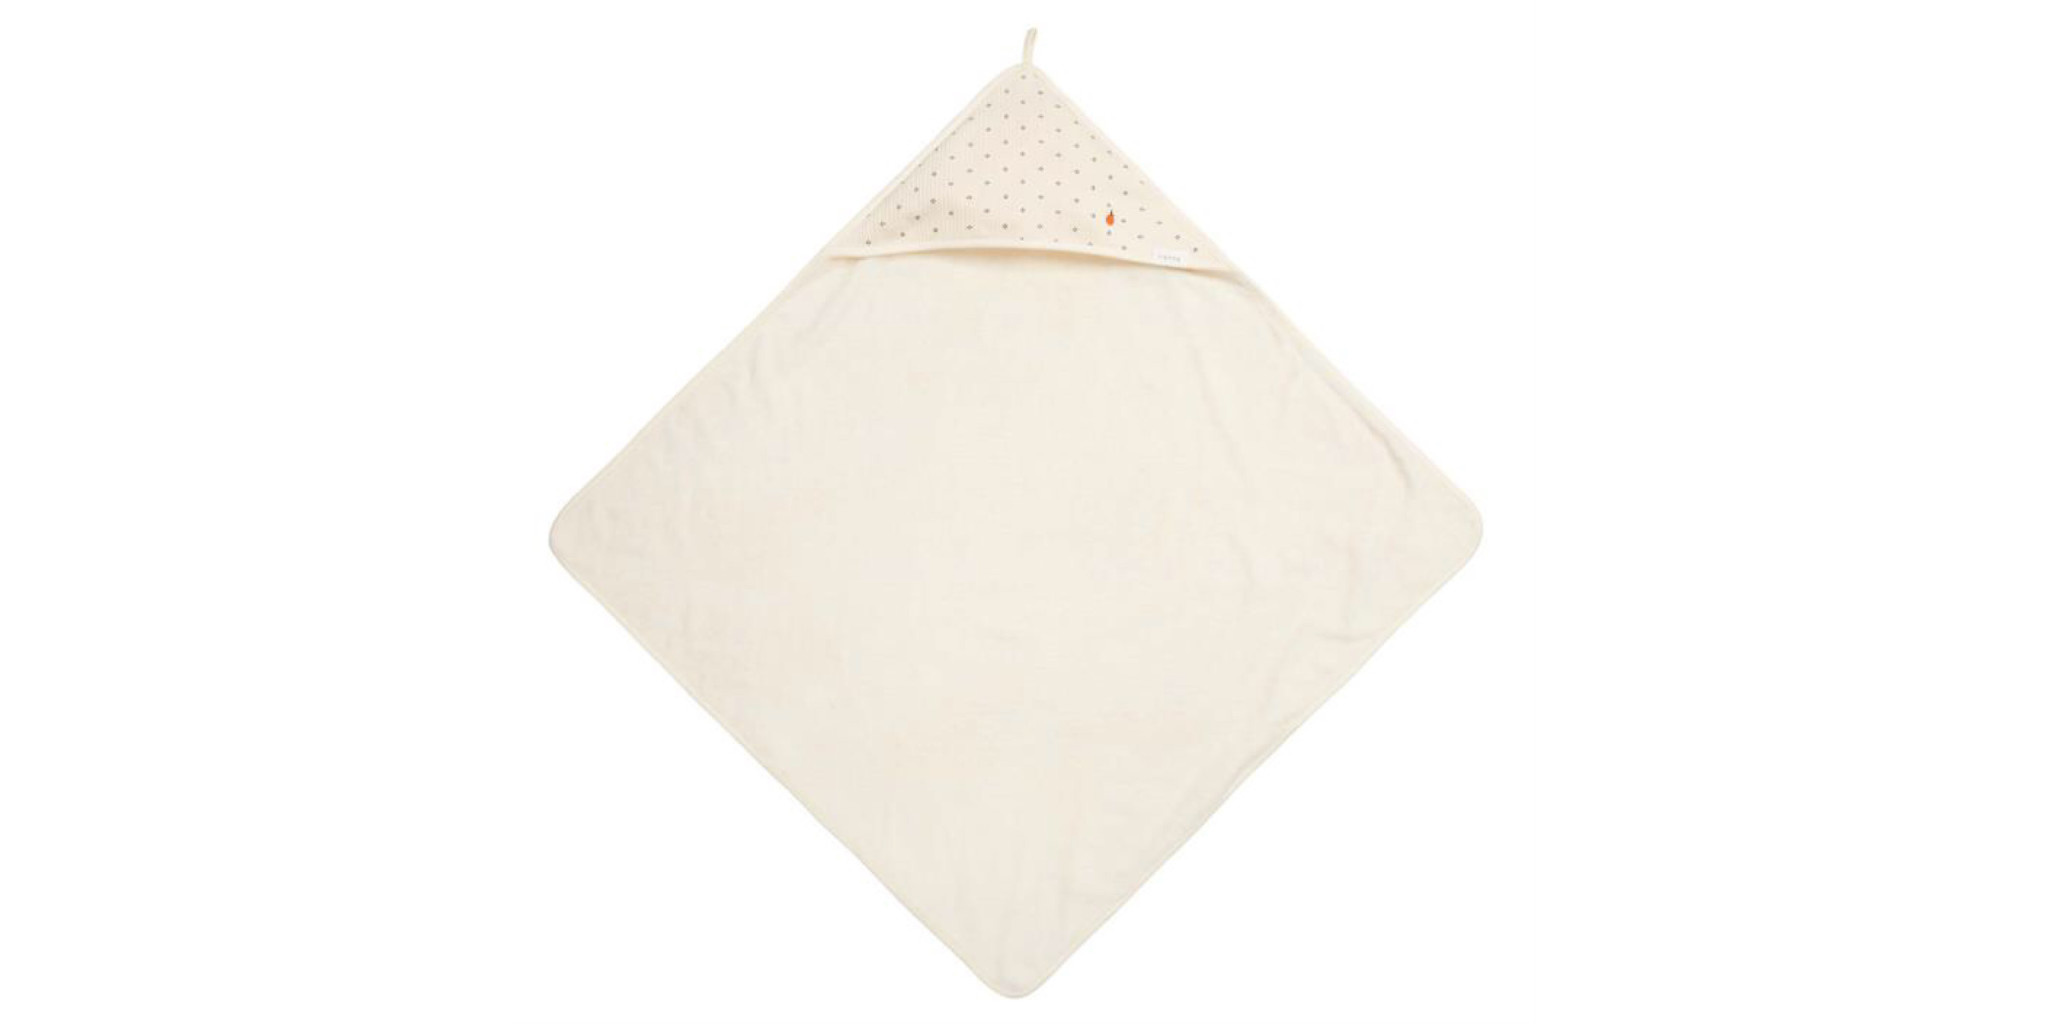 Koeka koeka wrap towel Petit Pomme powder white 102